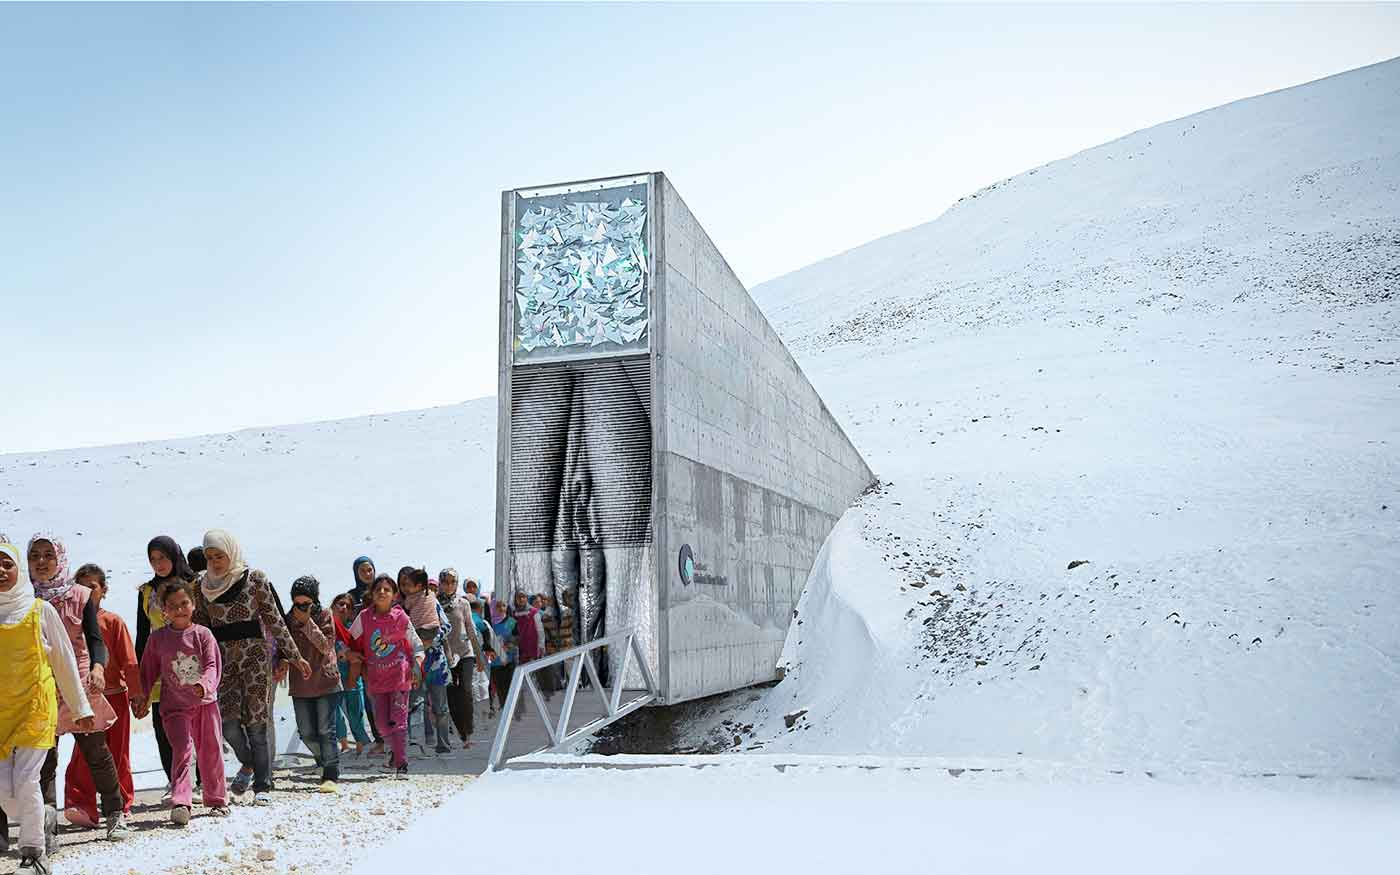 Arctic doomsday seed vault vagina with Syrian refugee withdrawal